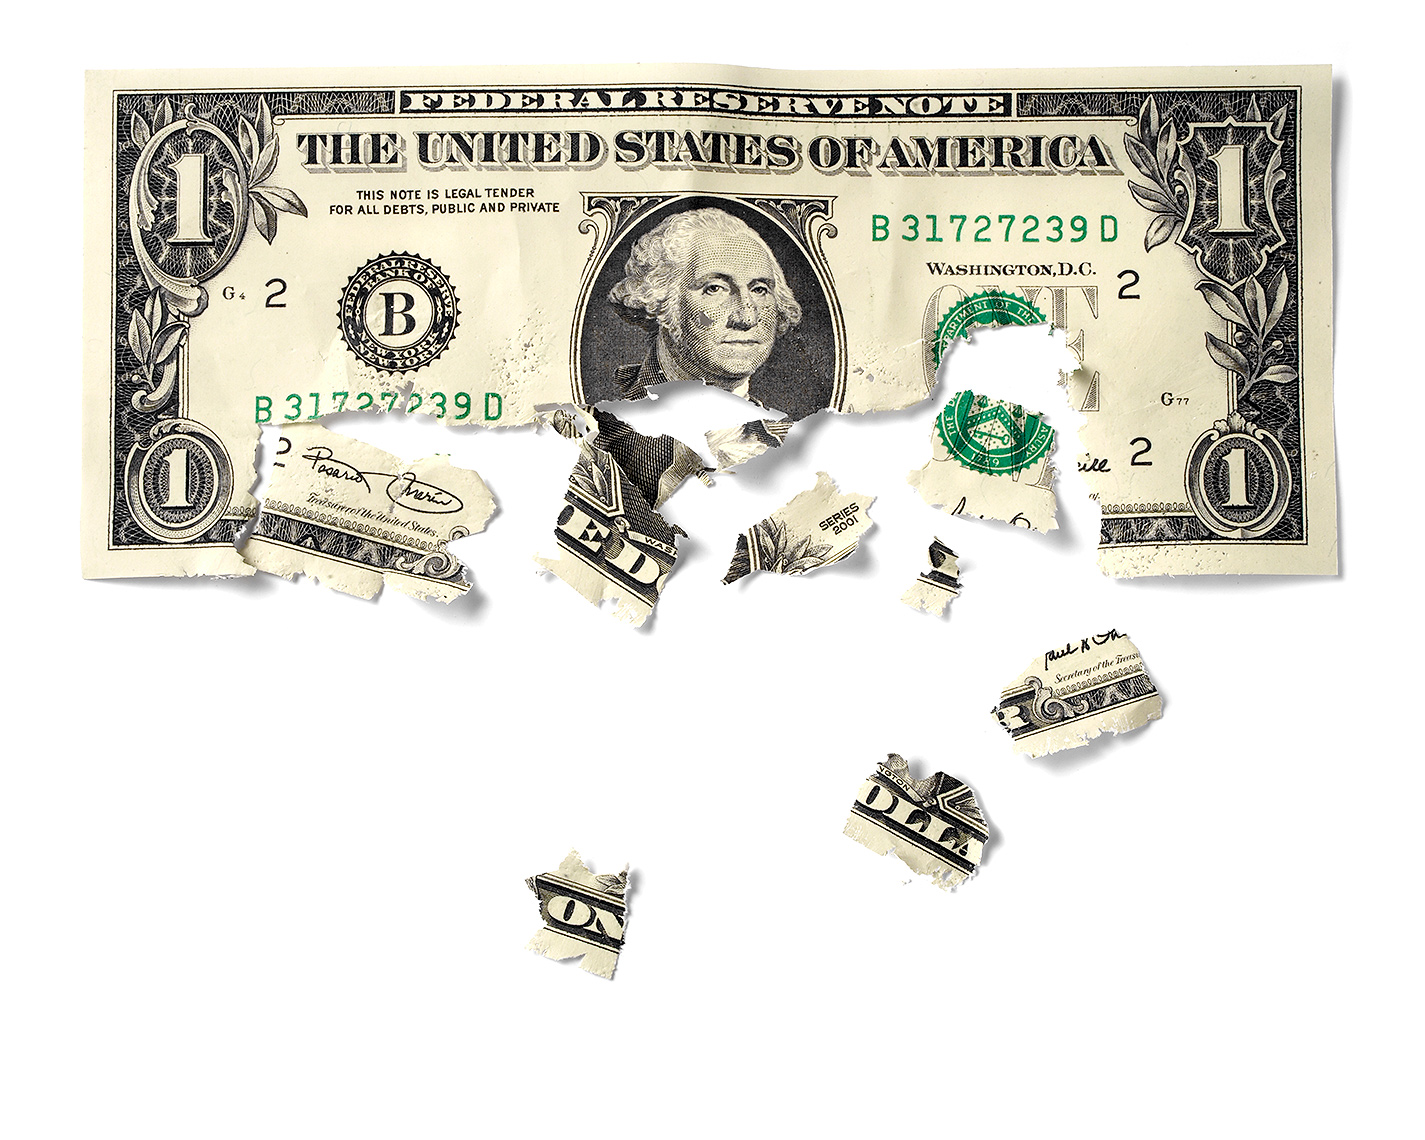 Disintegrating dollar bill photo-illustration by John Kuczala